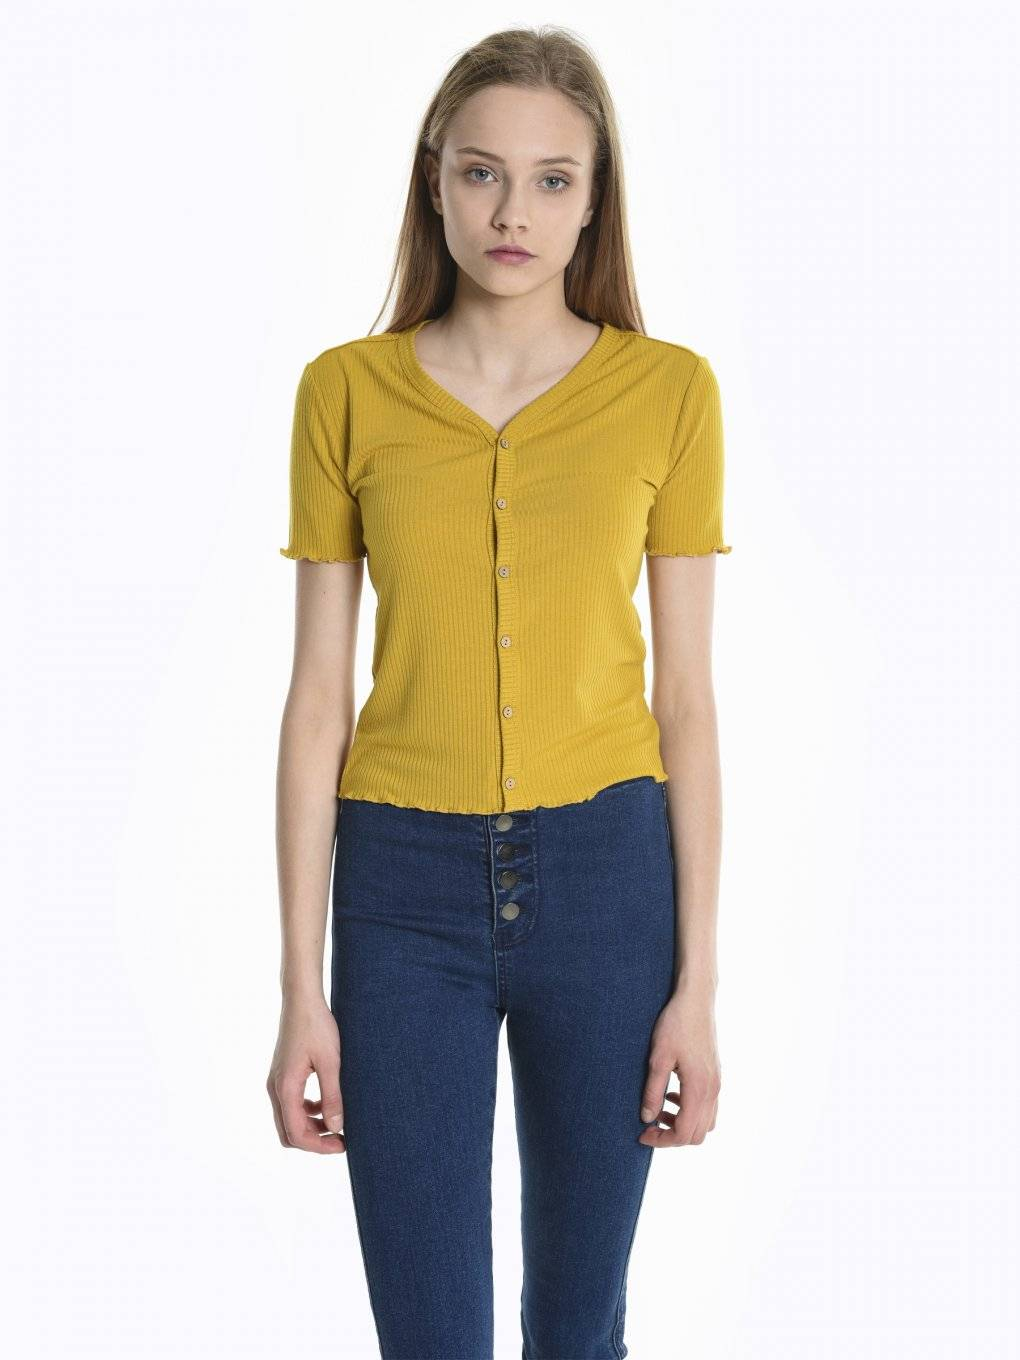 Ribbed v-neck short sleeve top with buttons